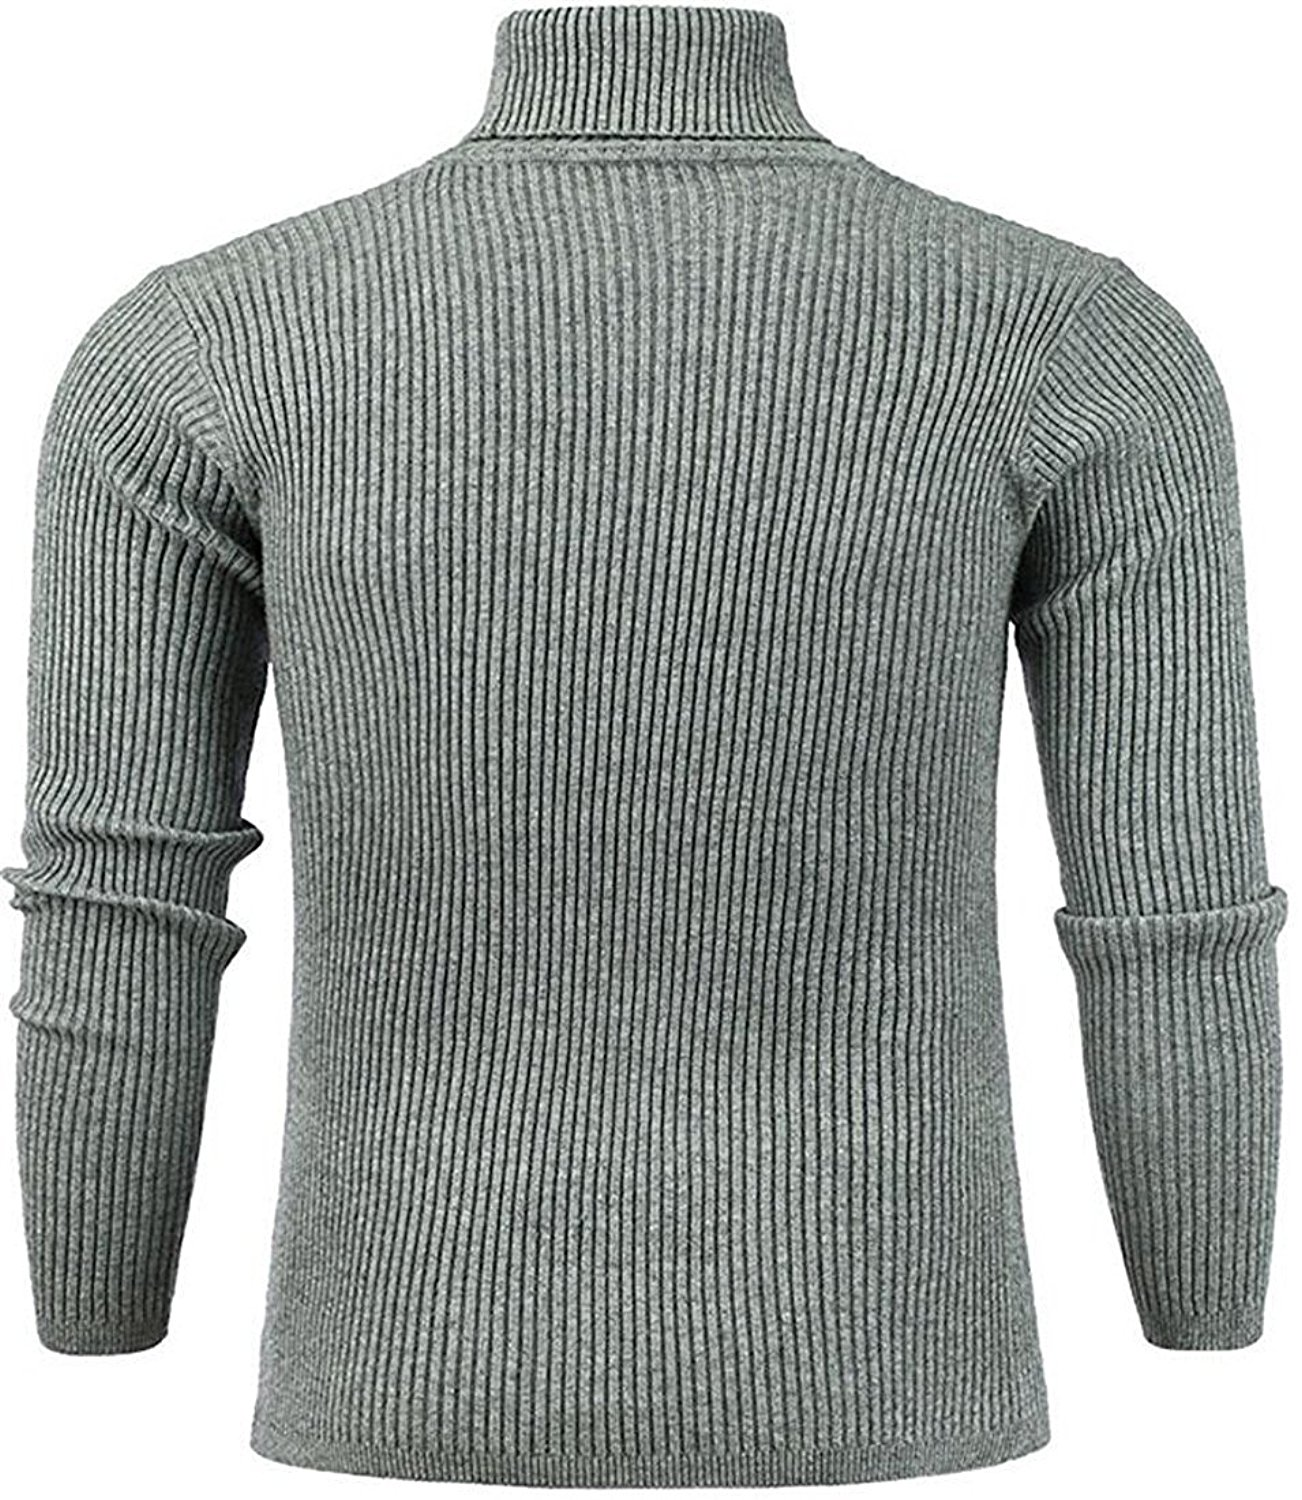 393bb62dfa0 Get Quotations · B dressy Fashion Men s Loose Turtleneck Knit Ribbed Slim Pullovers  Sweaters